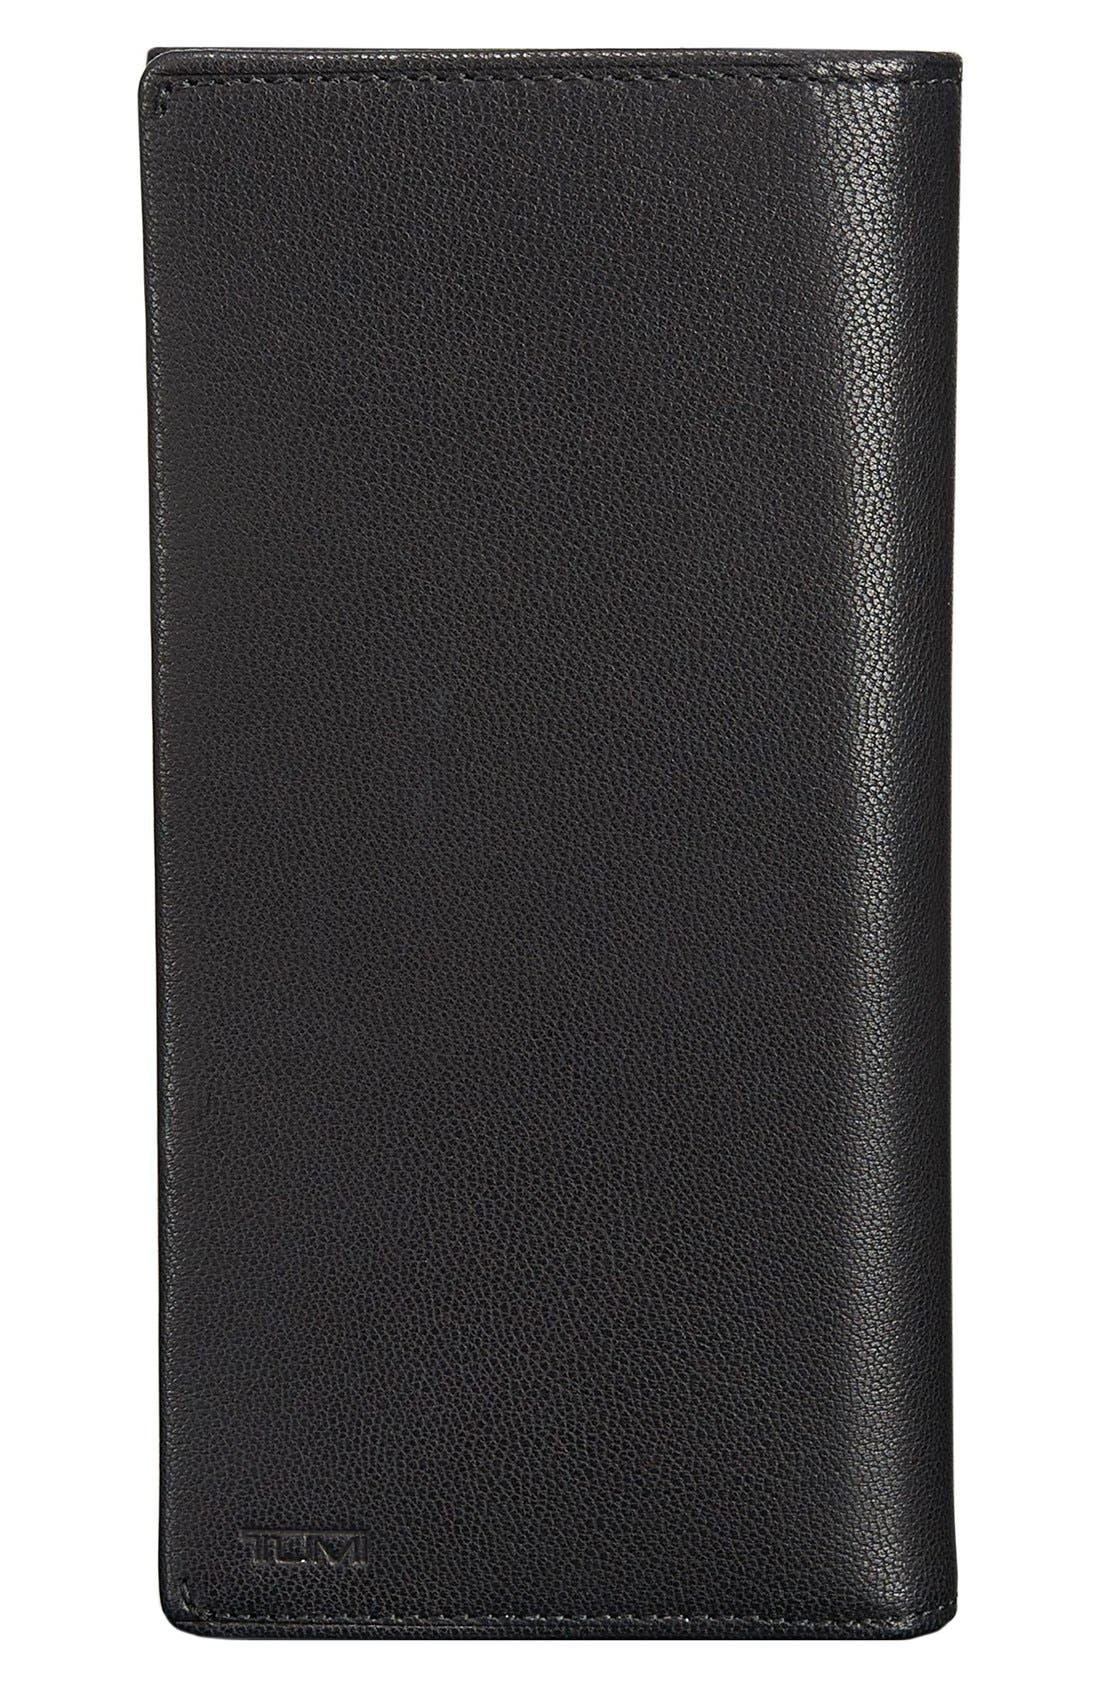 TUMI 'Chambers' Leather Breast Pocket Wallet